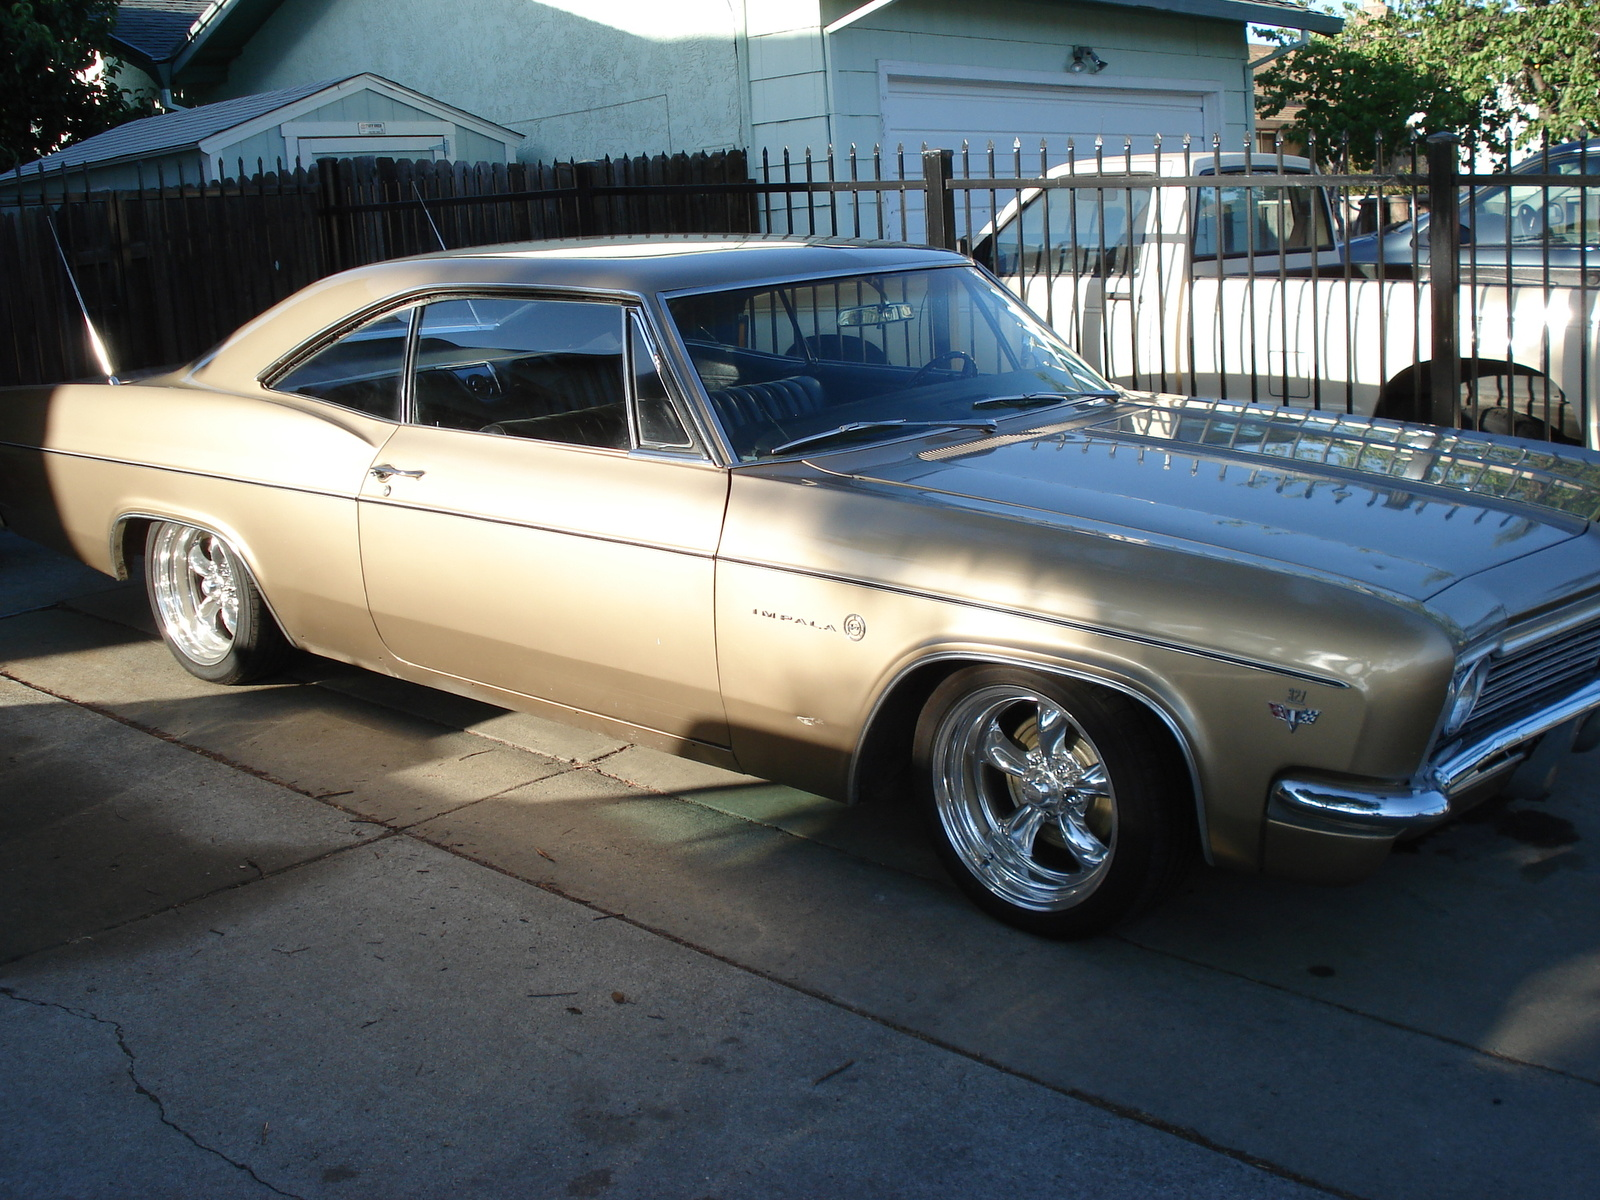 Chevrolet Impala 1996 5 chevrolet impala 1996 review, amazing pictures and images look